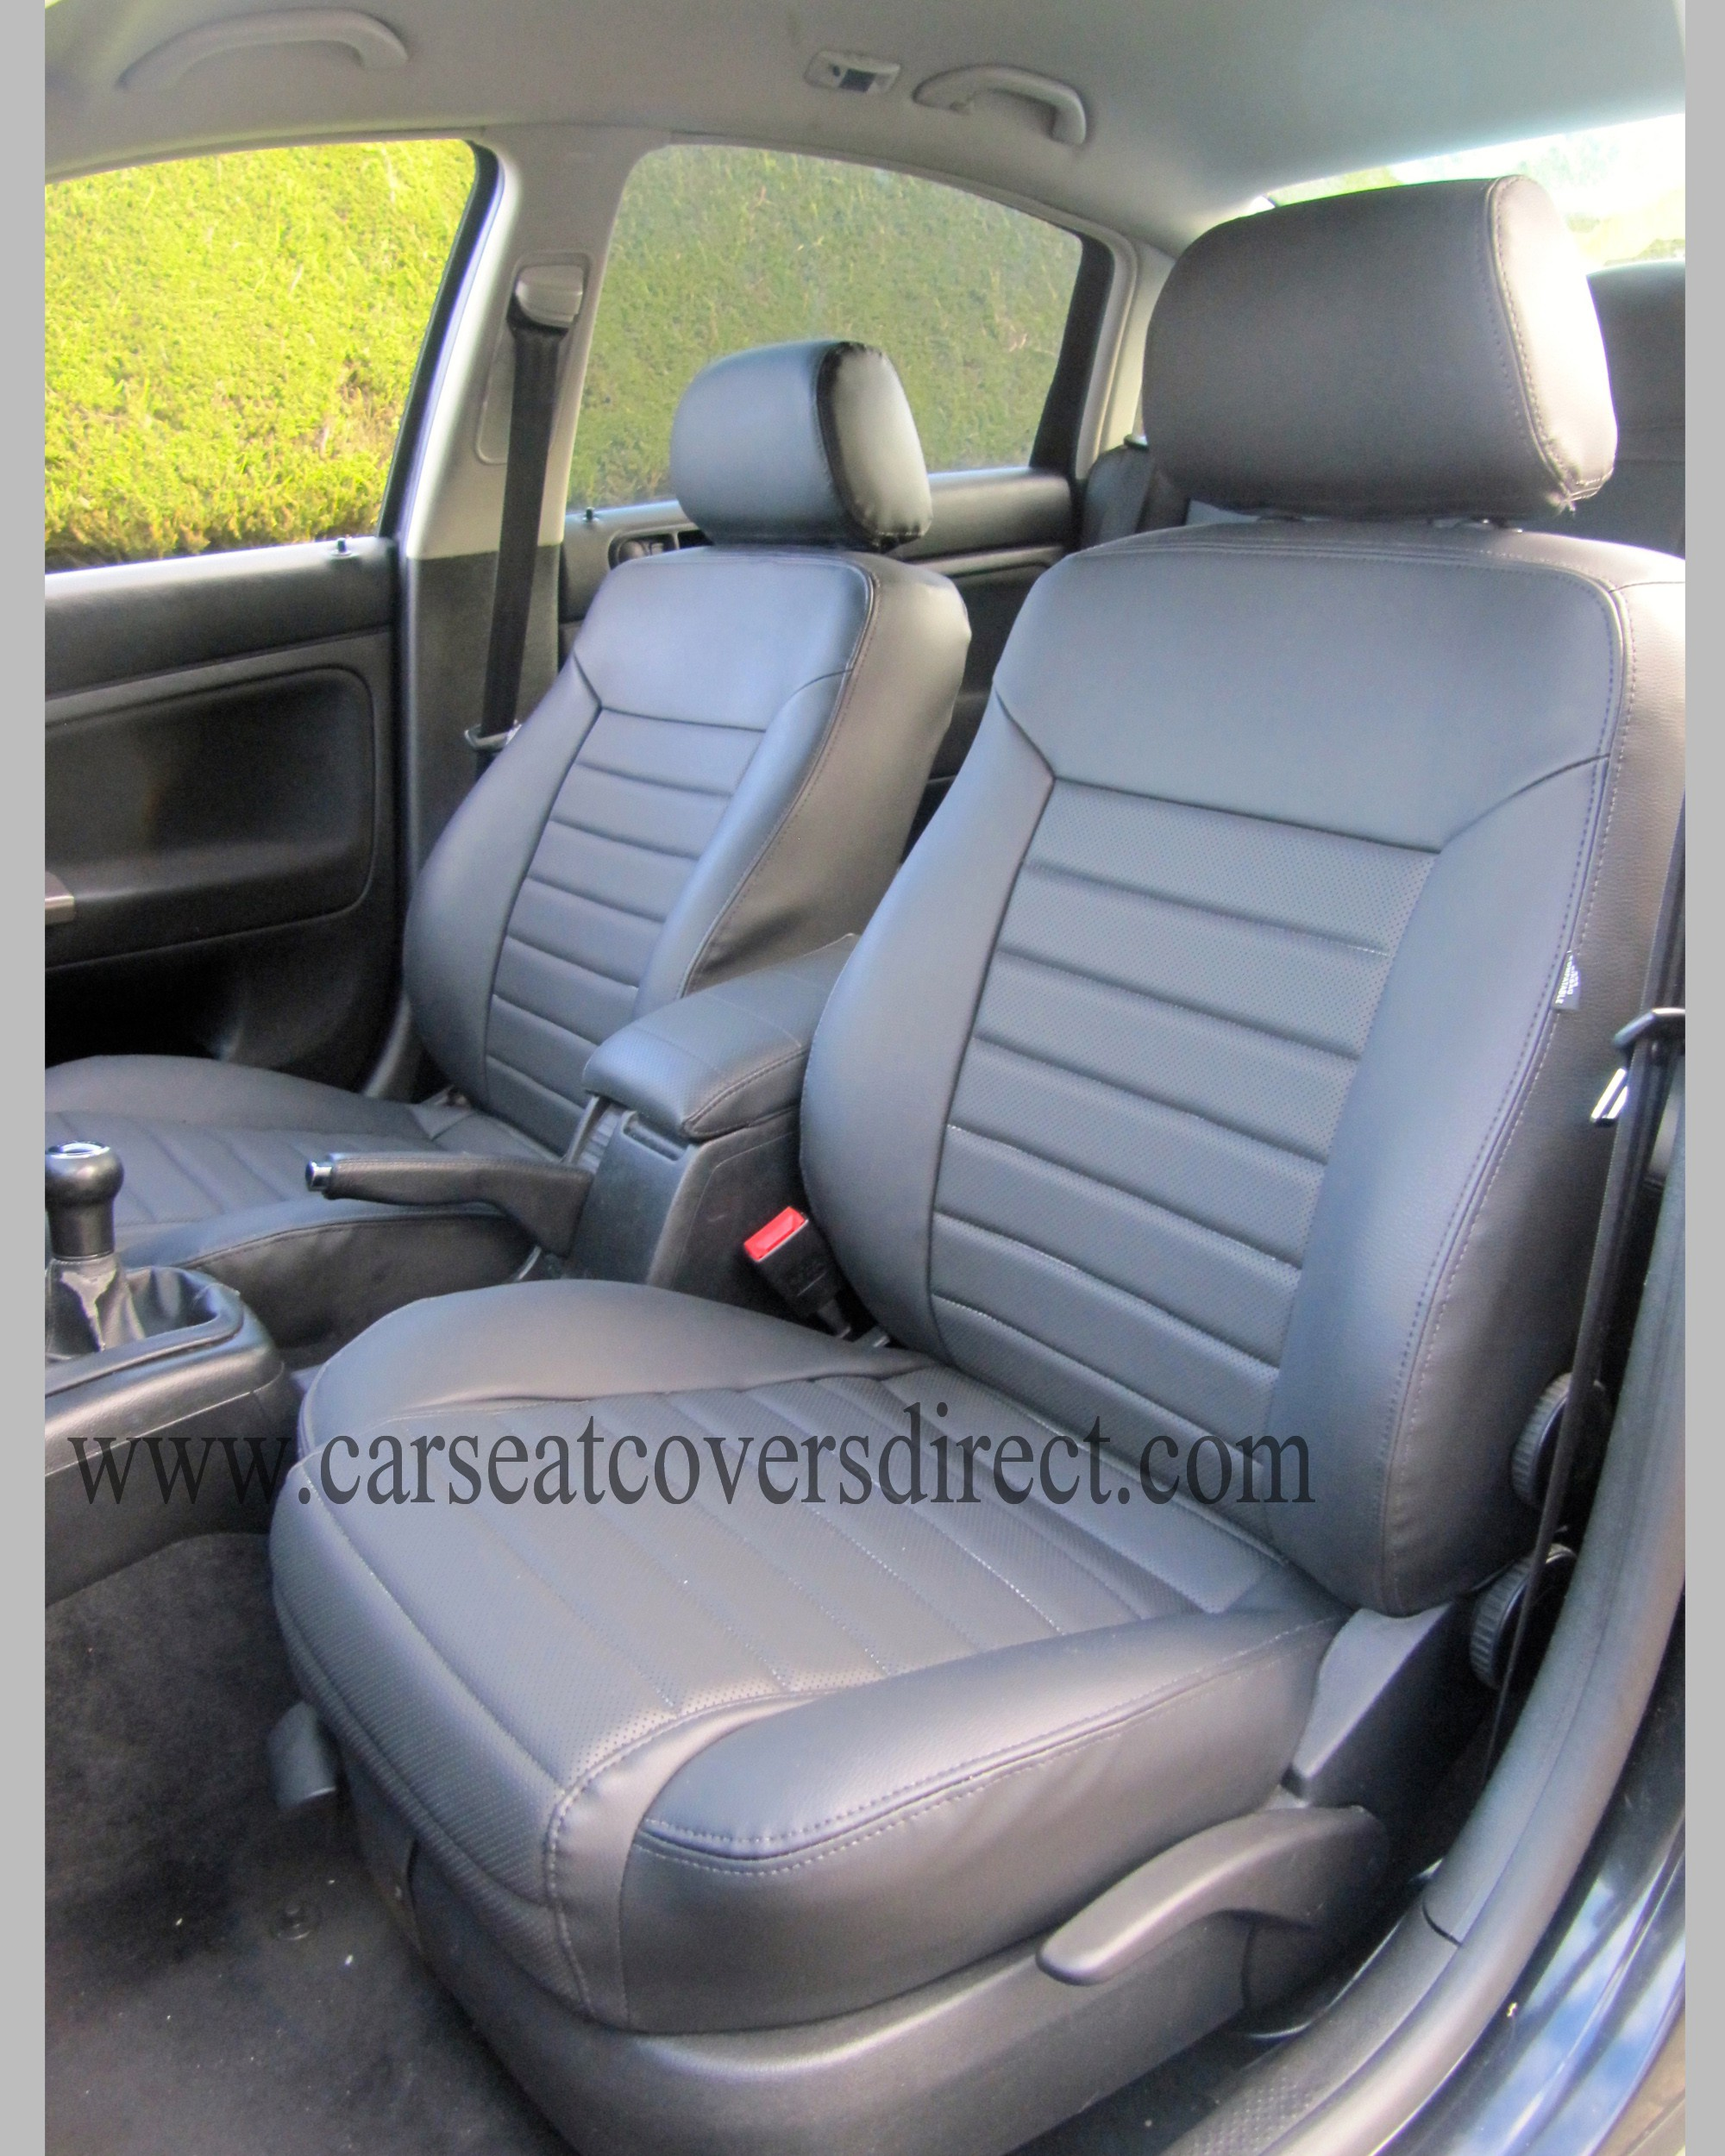 volkswagen vw passat b5 black foam backed seat covers car seat covers direct tailored to your. Black Bedroom Furniture Sets. Home Design Ideas